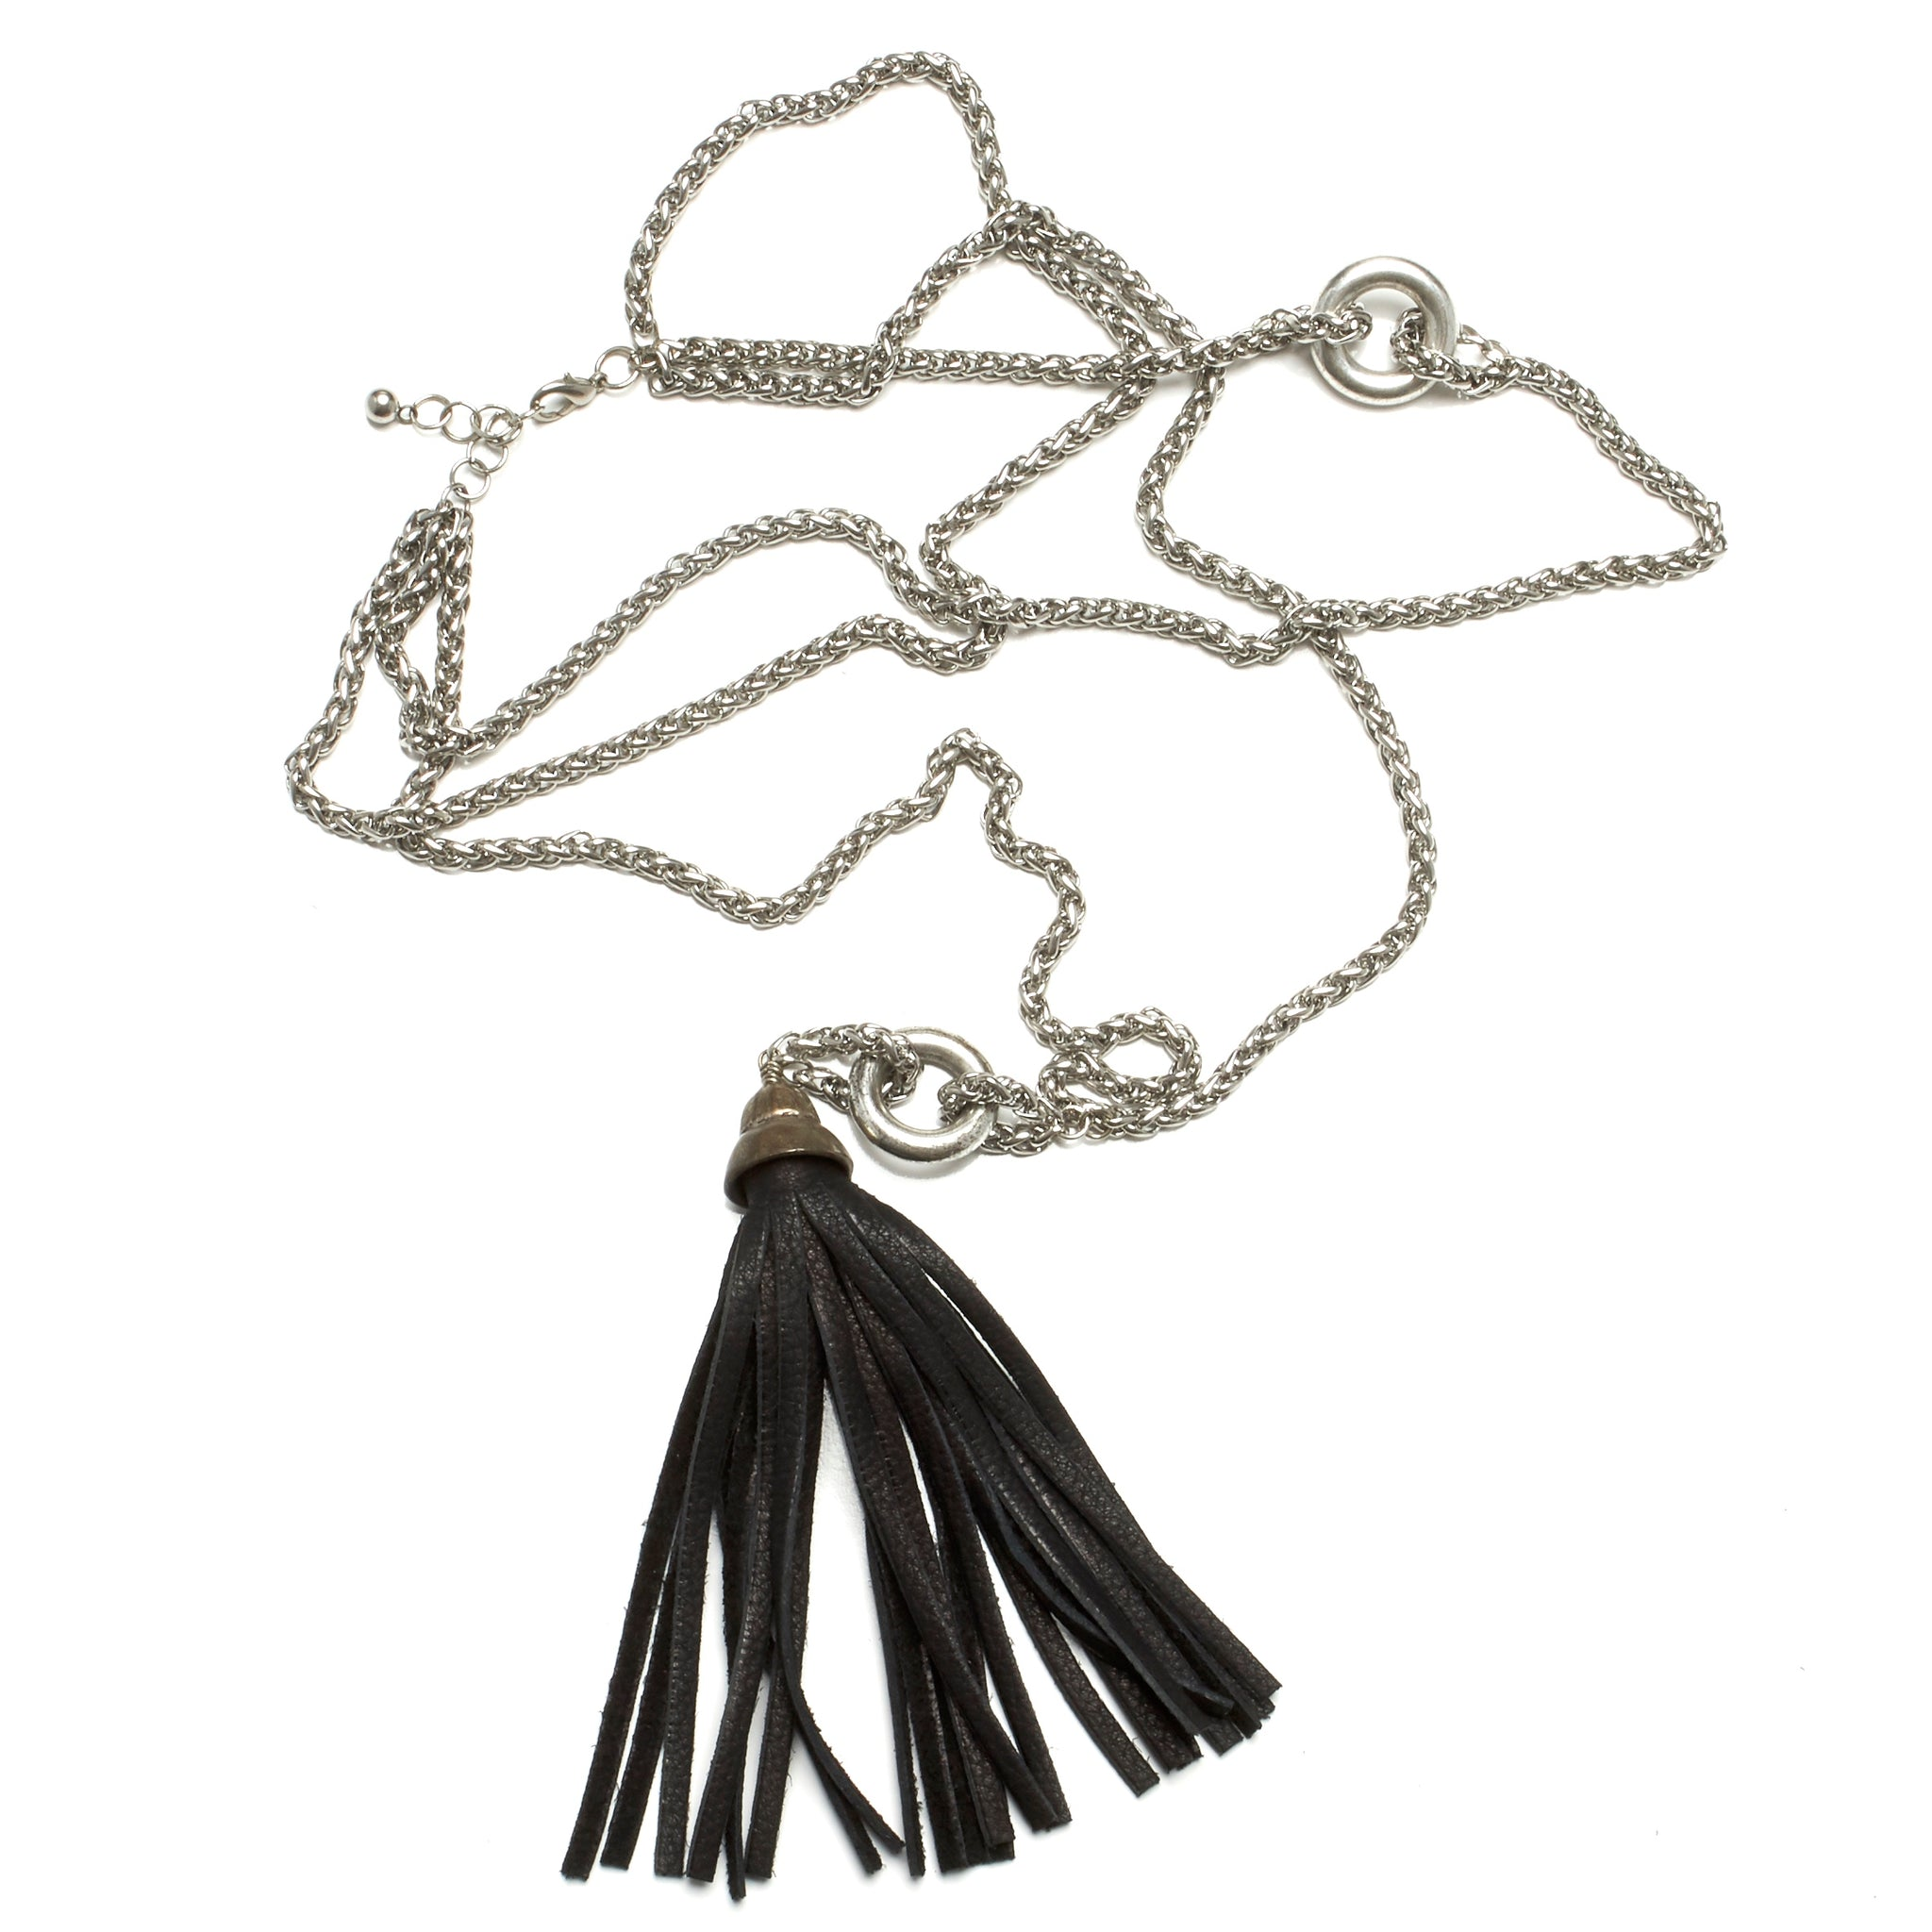 TRIPLE ROW STAINLESS STEEL NECKLACE WITH LONG DEERSKIN TASSEL BY NYET JEWELRY.